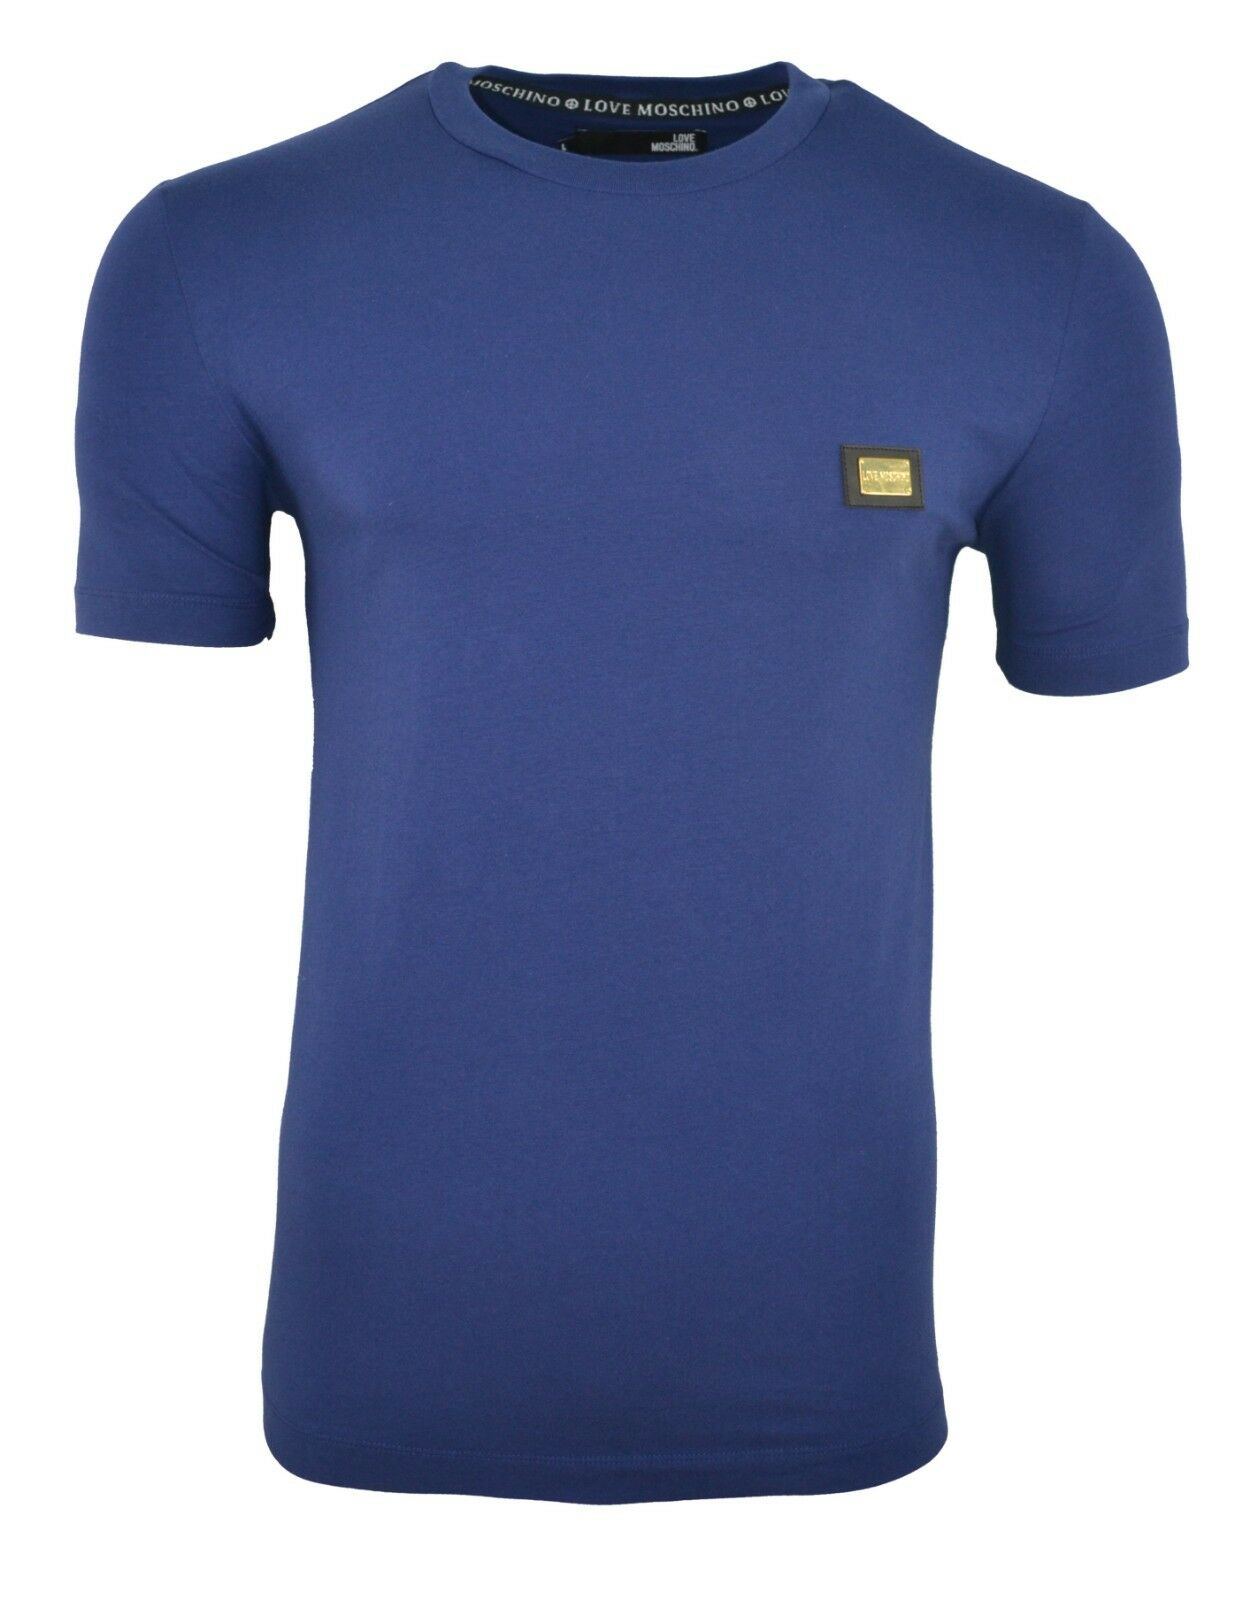 LOVE MOSCHINO METAL CHEST BADGE T-SHIRT SLIM STRETCH MUSCLE FIT NAVY Blau